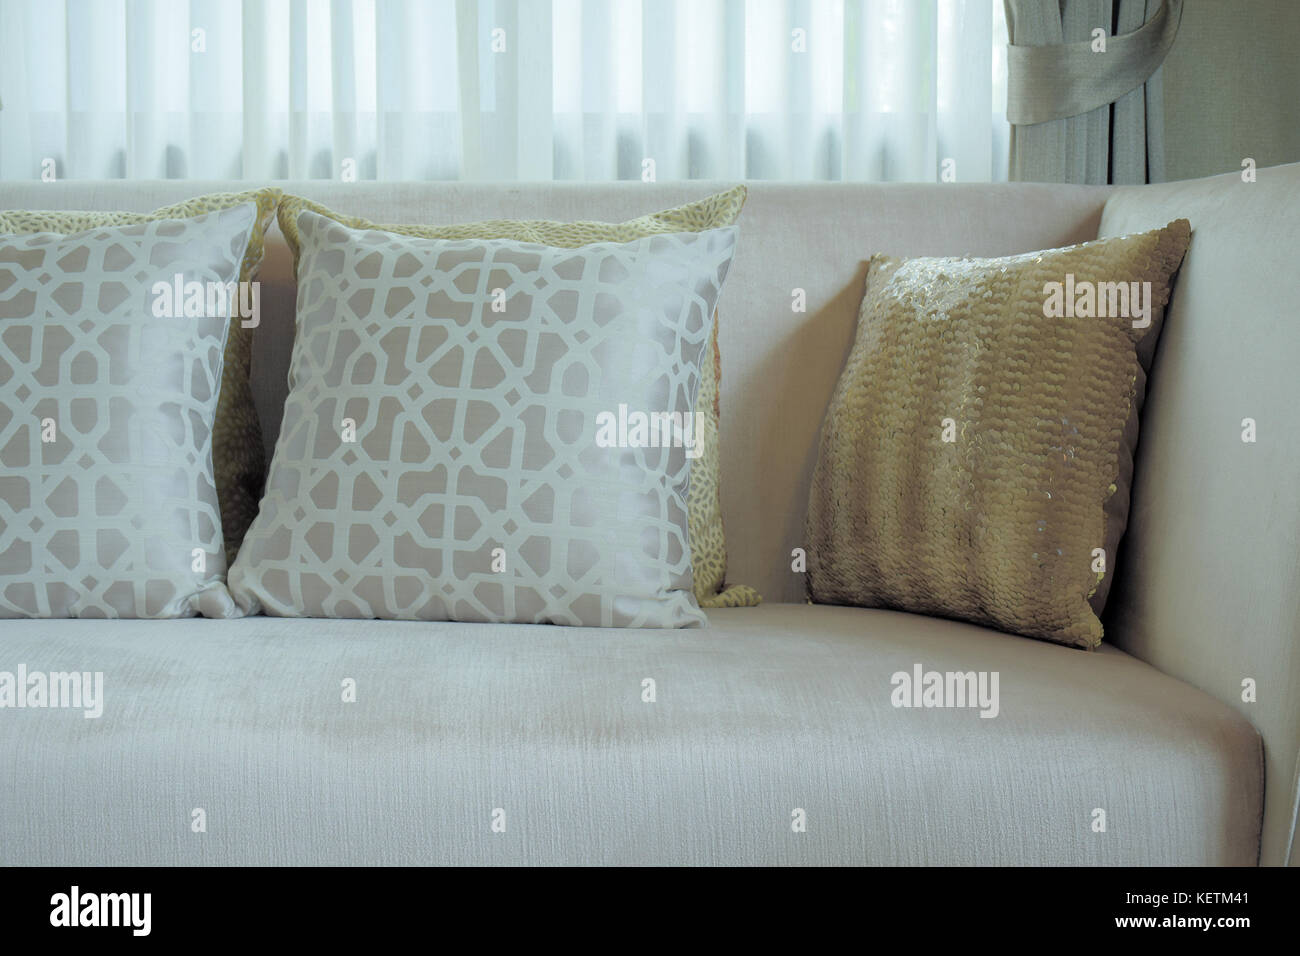 Beautiful Silver And Gold Color Pillows On Beige Sofa Stock Photo Alamy